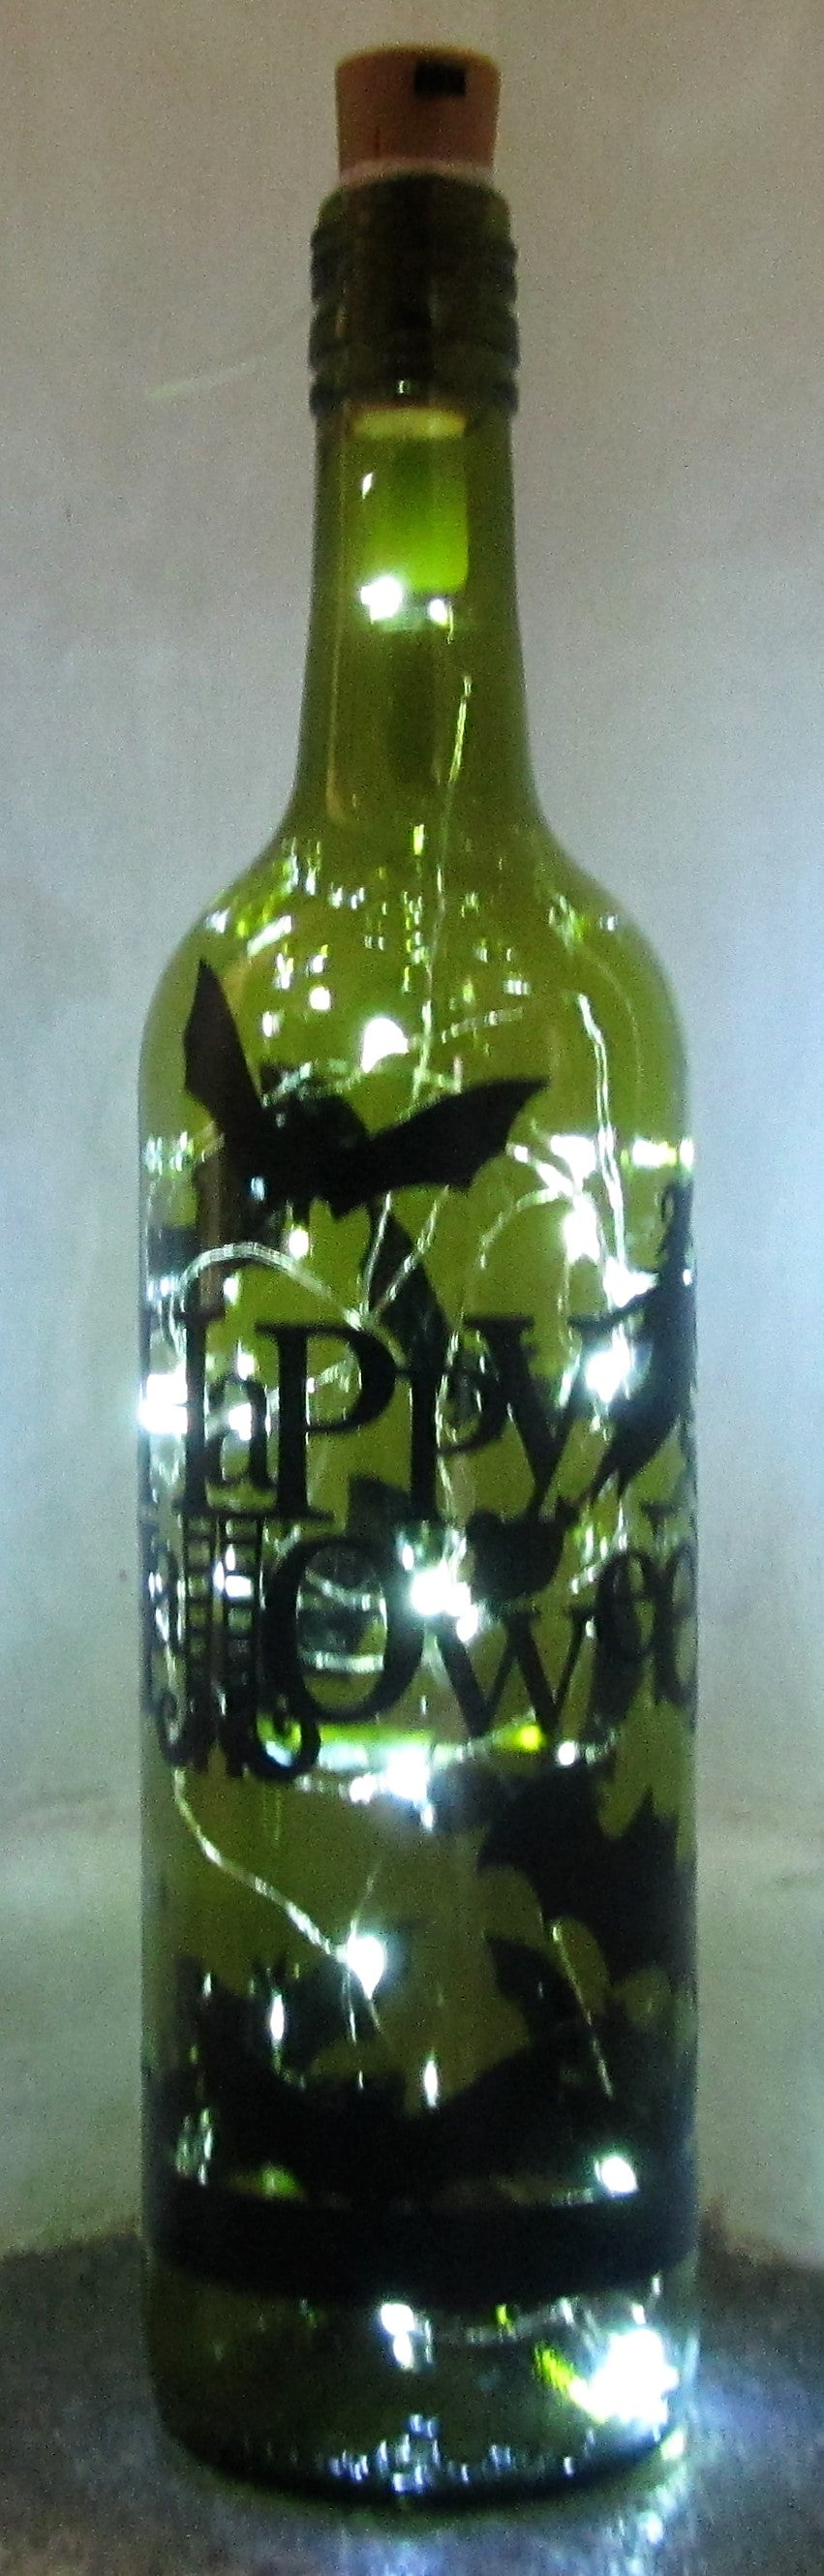 Purchase your Unique handcrafted Happy Halloween light up bottle with bats and witch